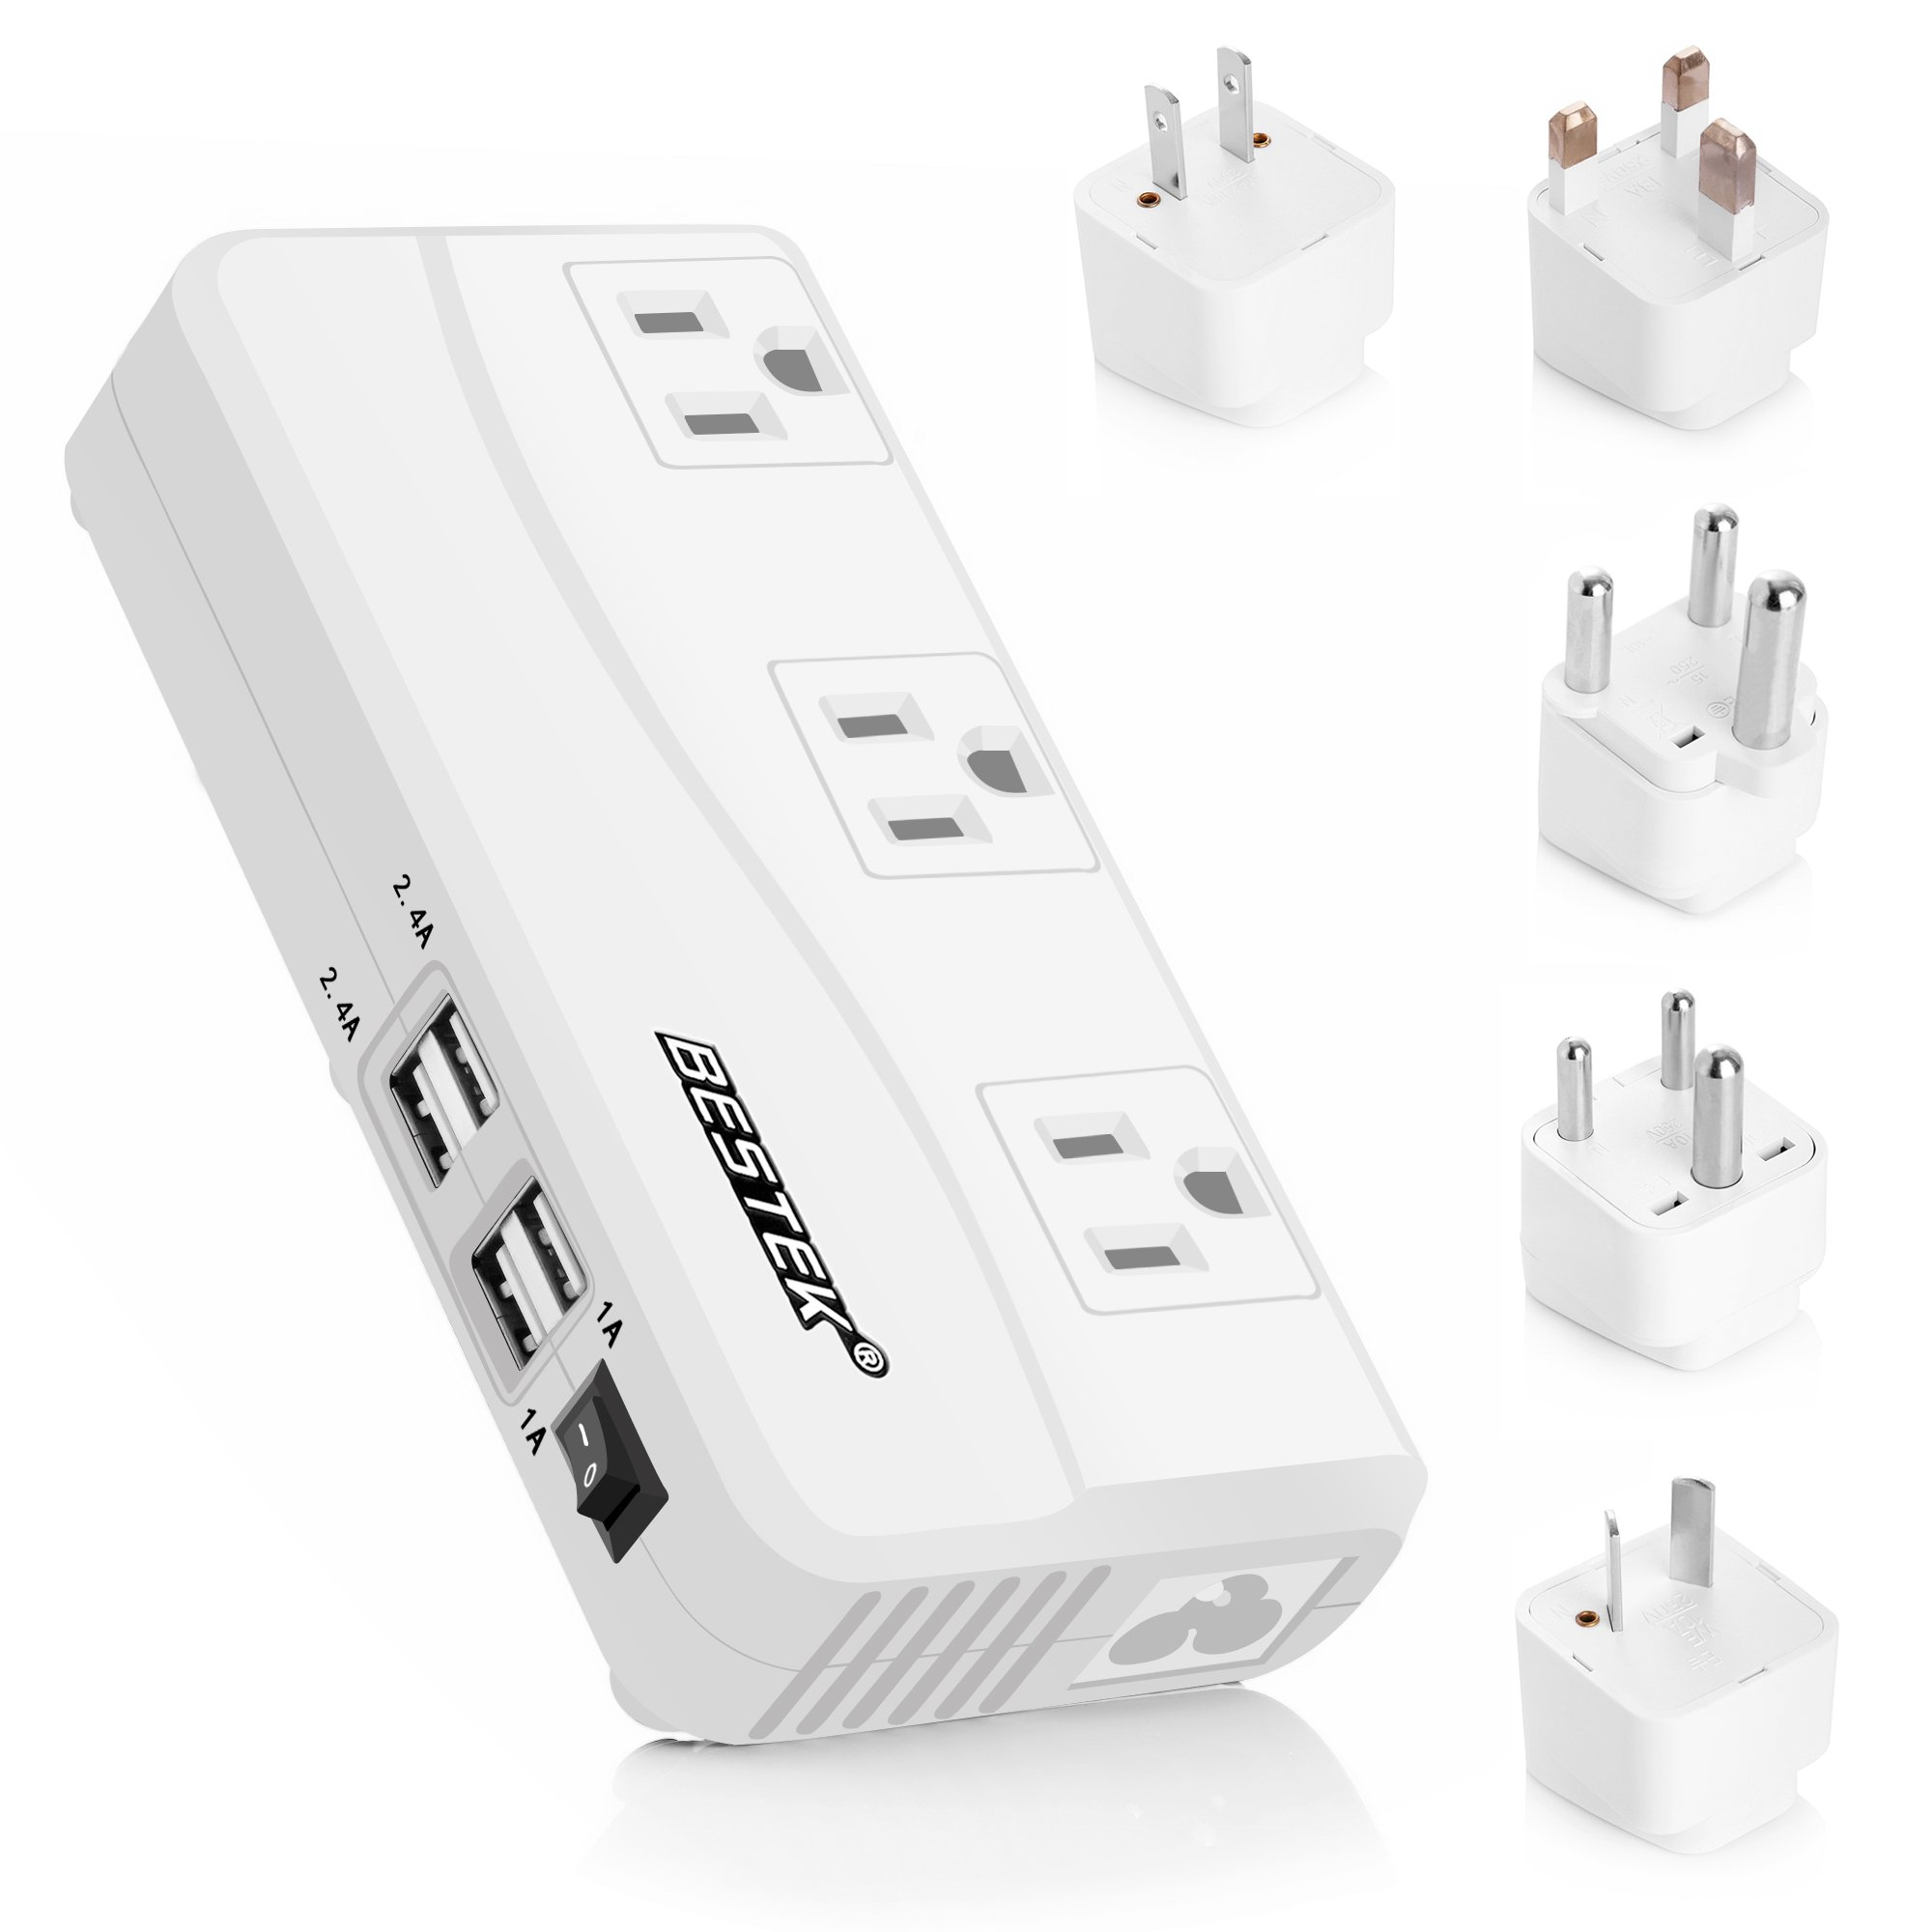 BESTEK International Power Adapter, 220V to 110V Step Down Travel Voltage Converter with 4-Port USB Including US/AU/EU/UK//India/South Africa Plug Adapter, 200W by BESTEK